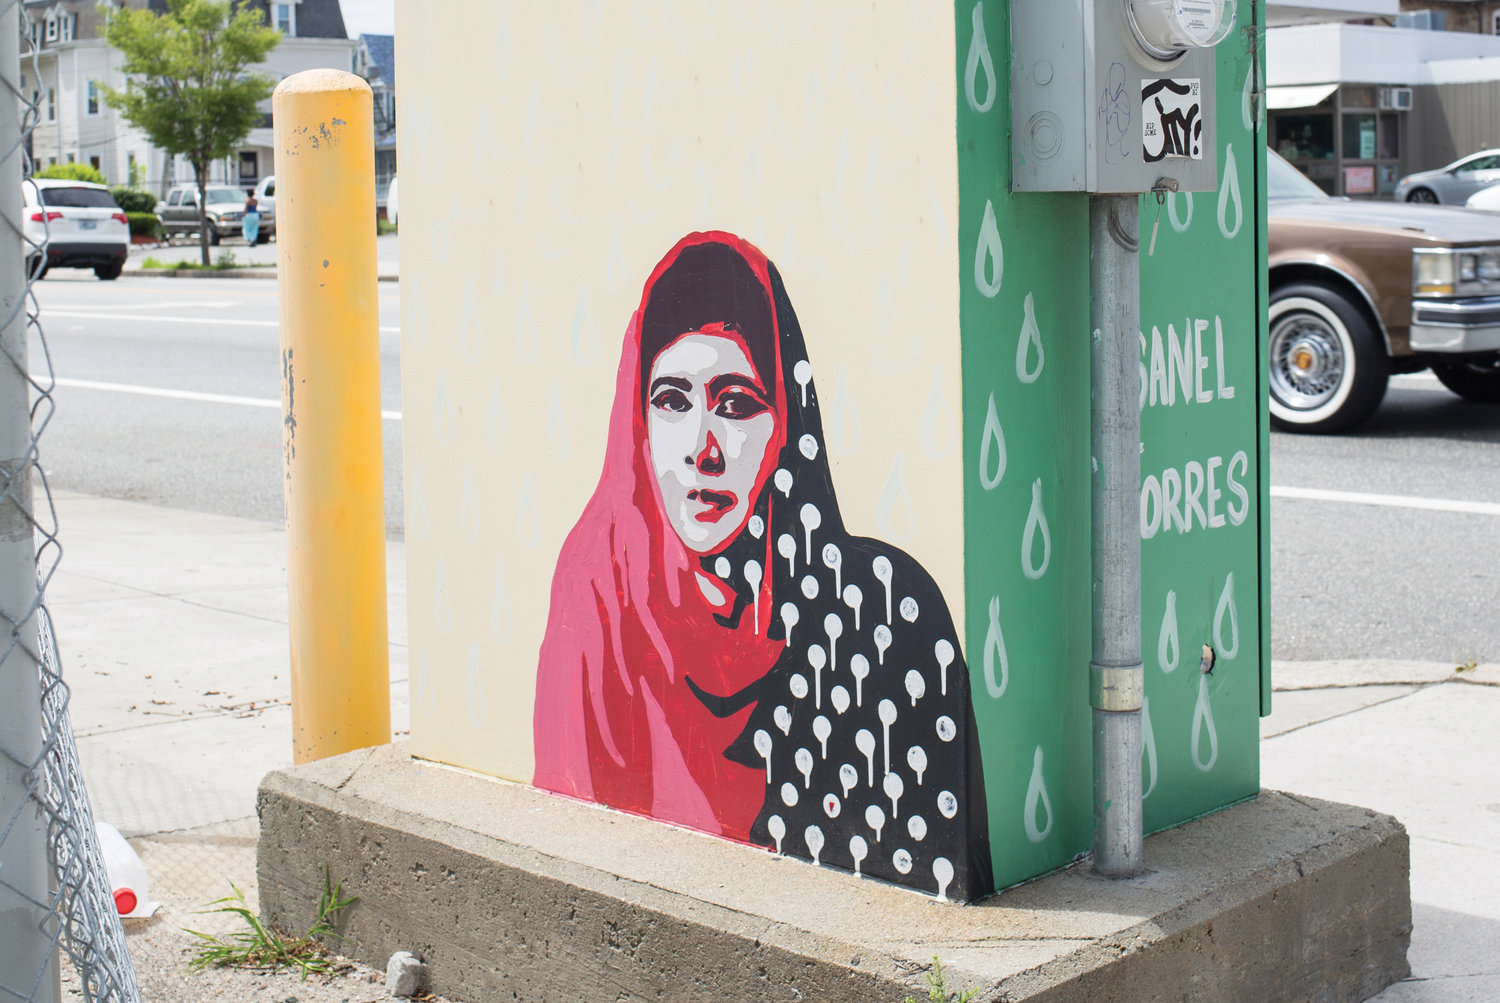 Malala's polka dots drip to 